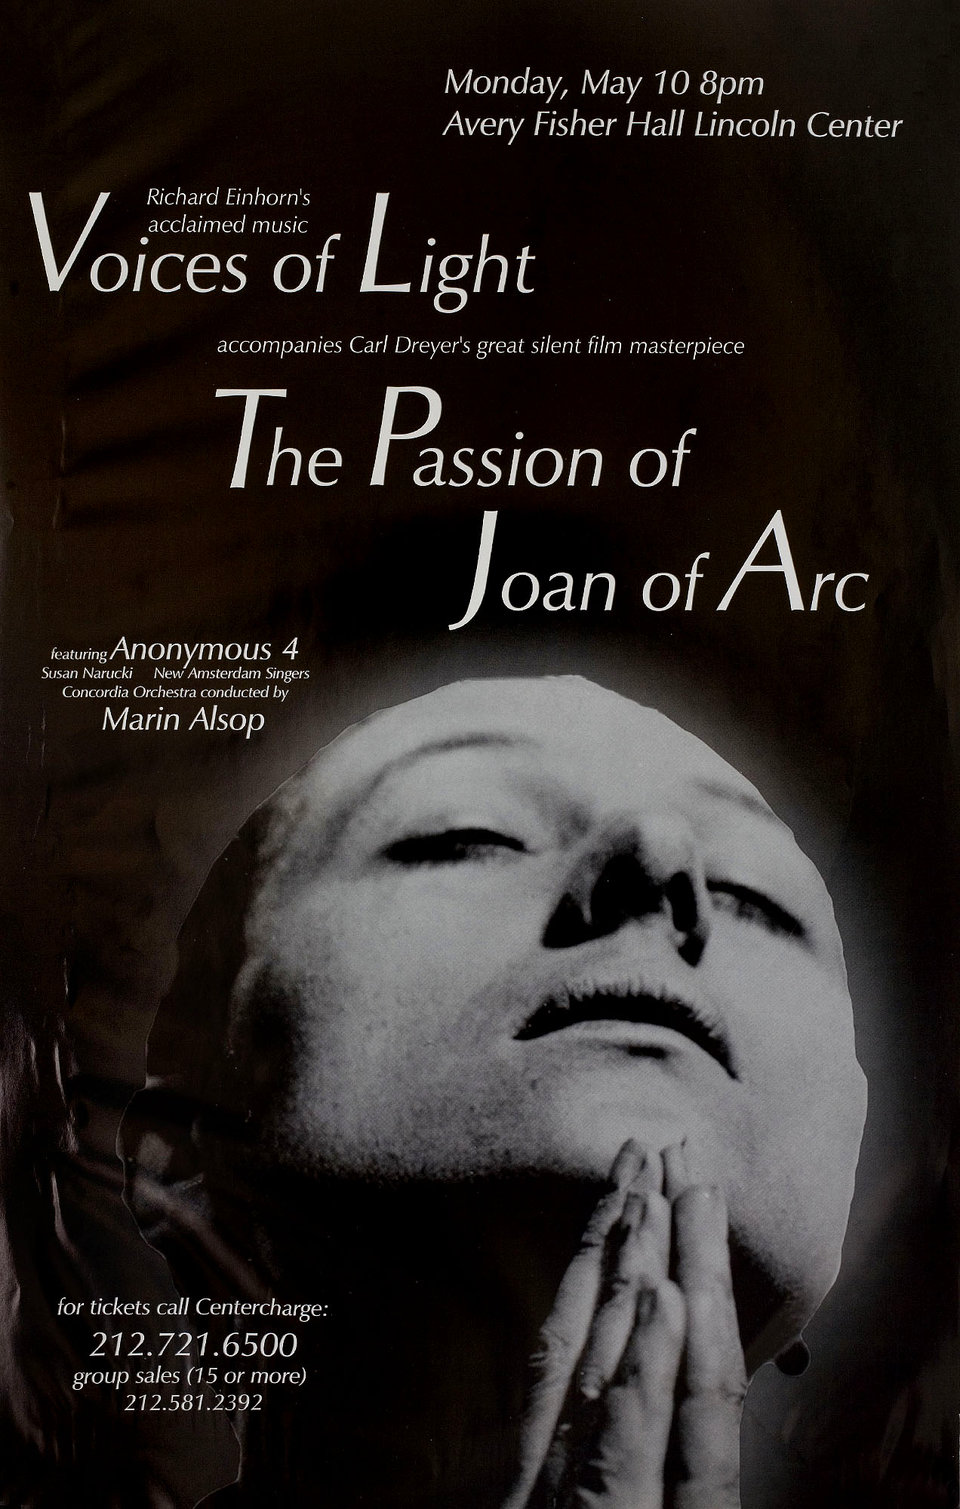 The Passion of Joan of Arc R1999 U.S. Window Card Poster